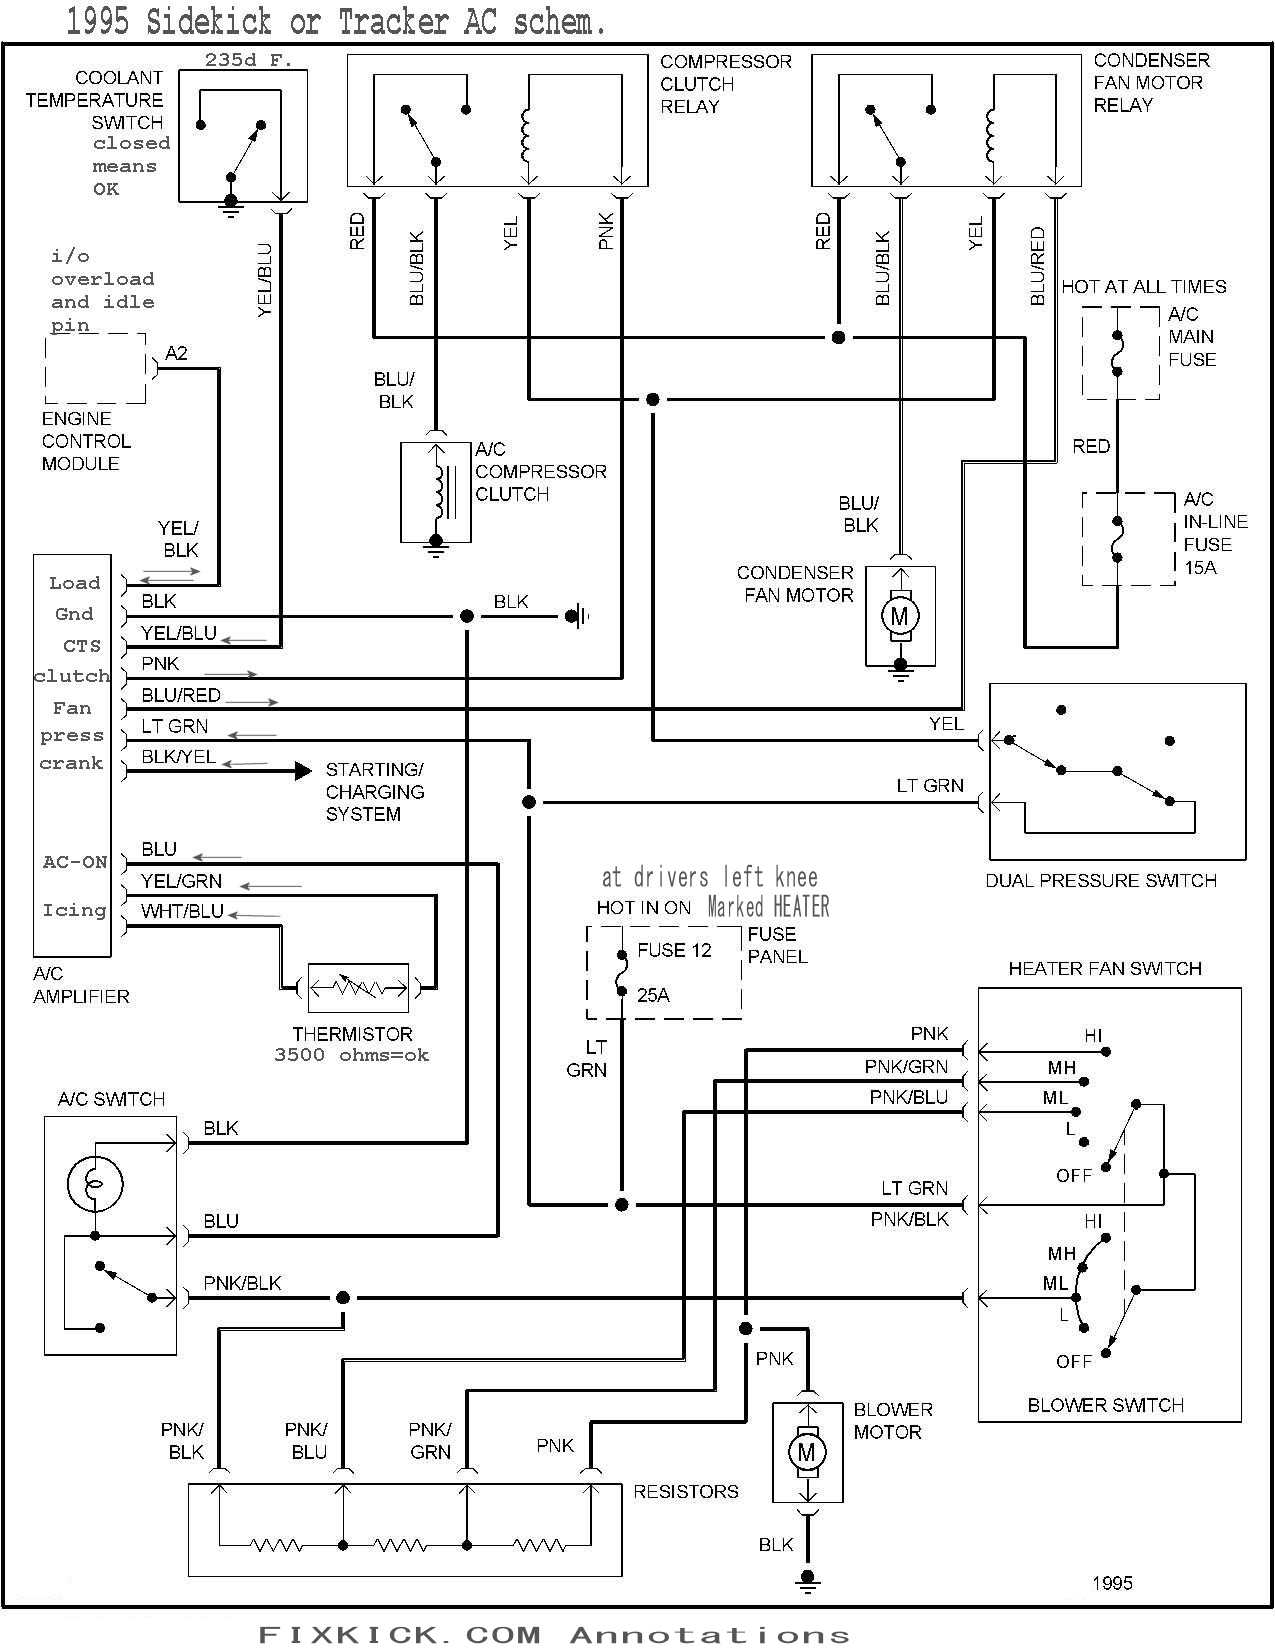 Suzuki Ac Wiring Diagrams Start Building A Diagram Sx4 Radio Air Conditioner Repair Rh Fixkick Com Vitara Conditioning